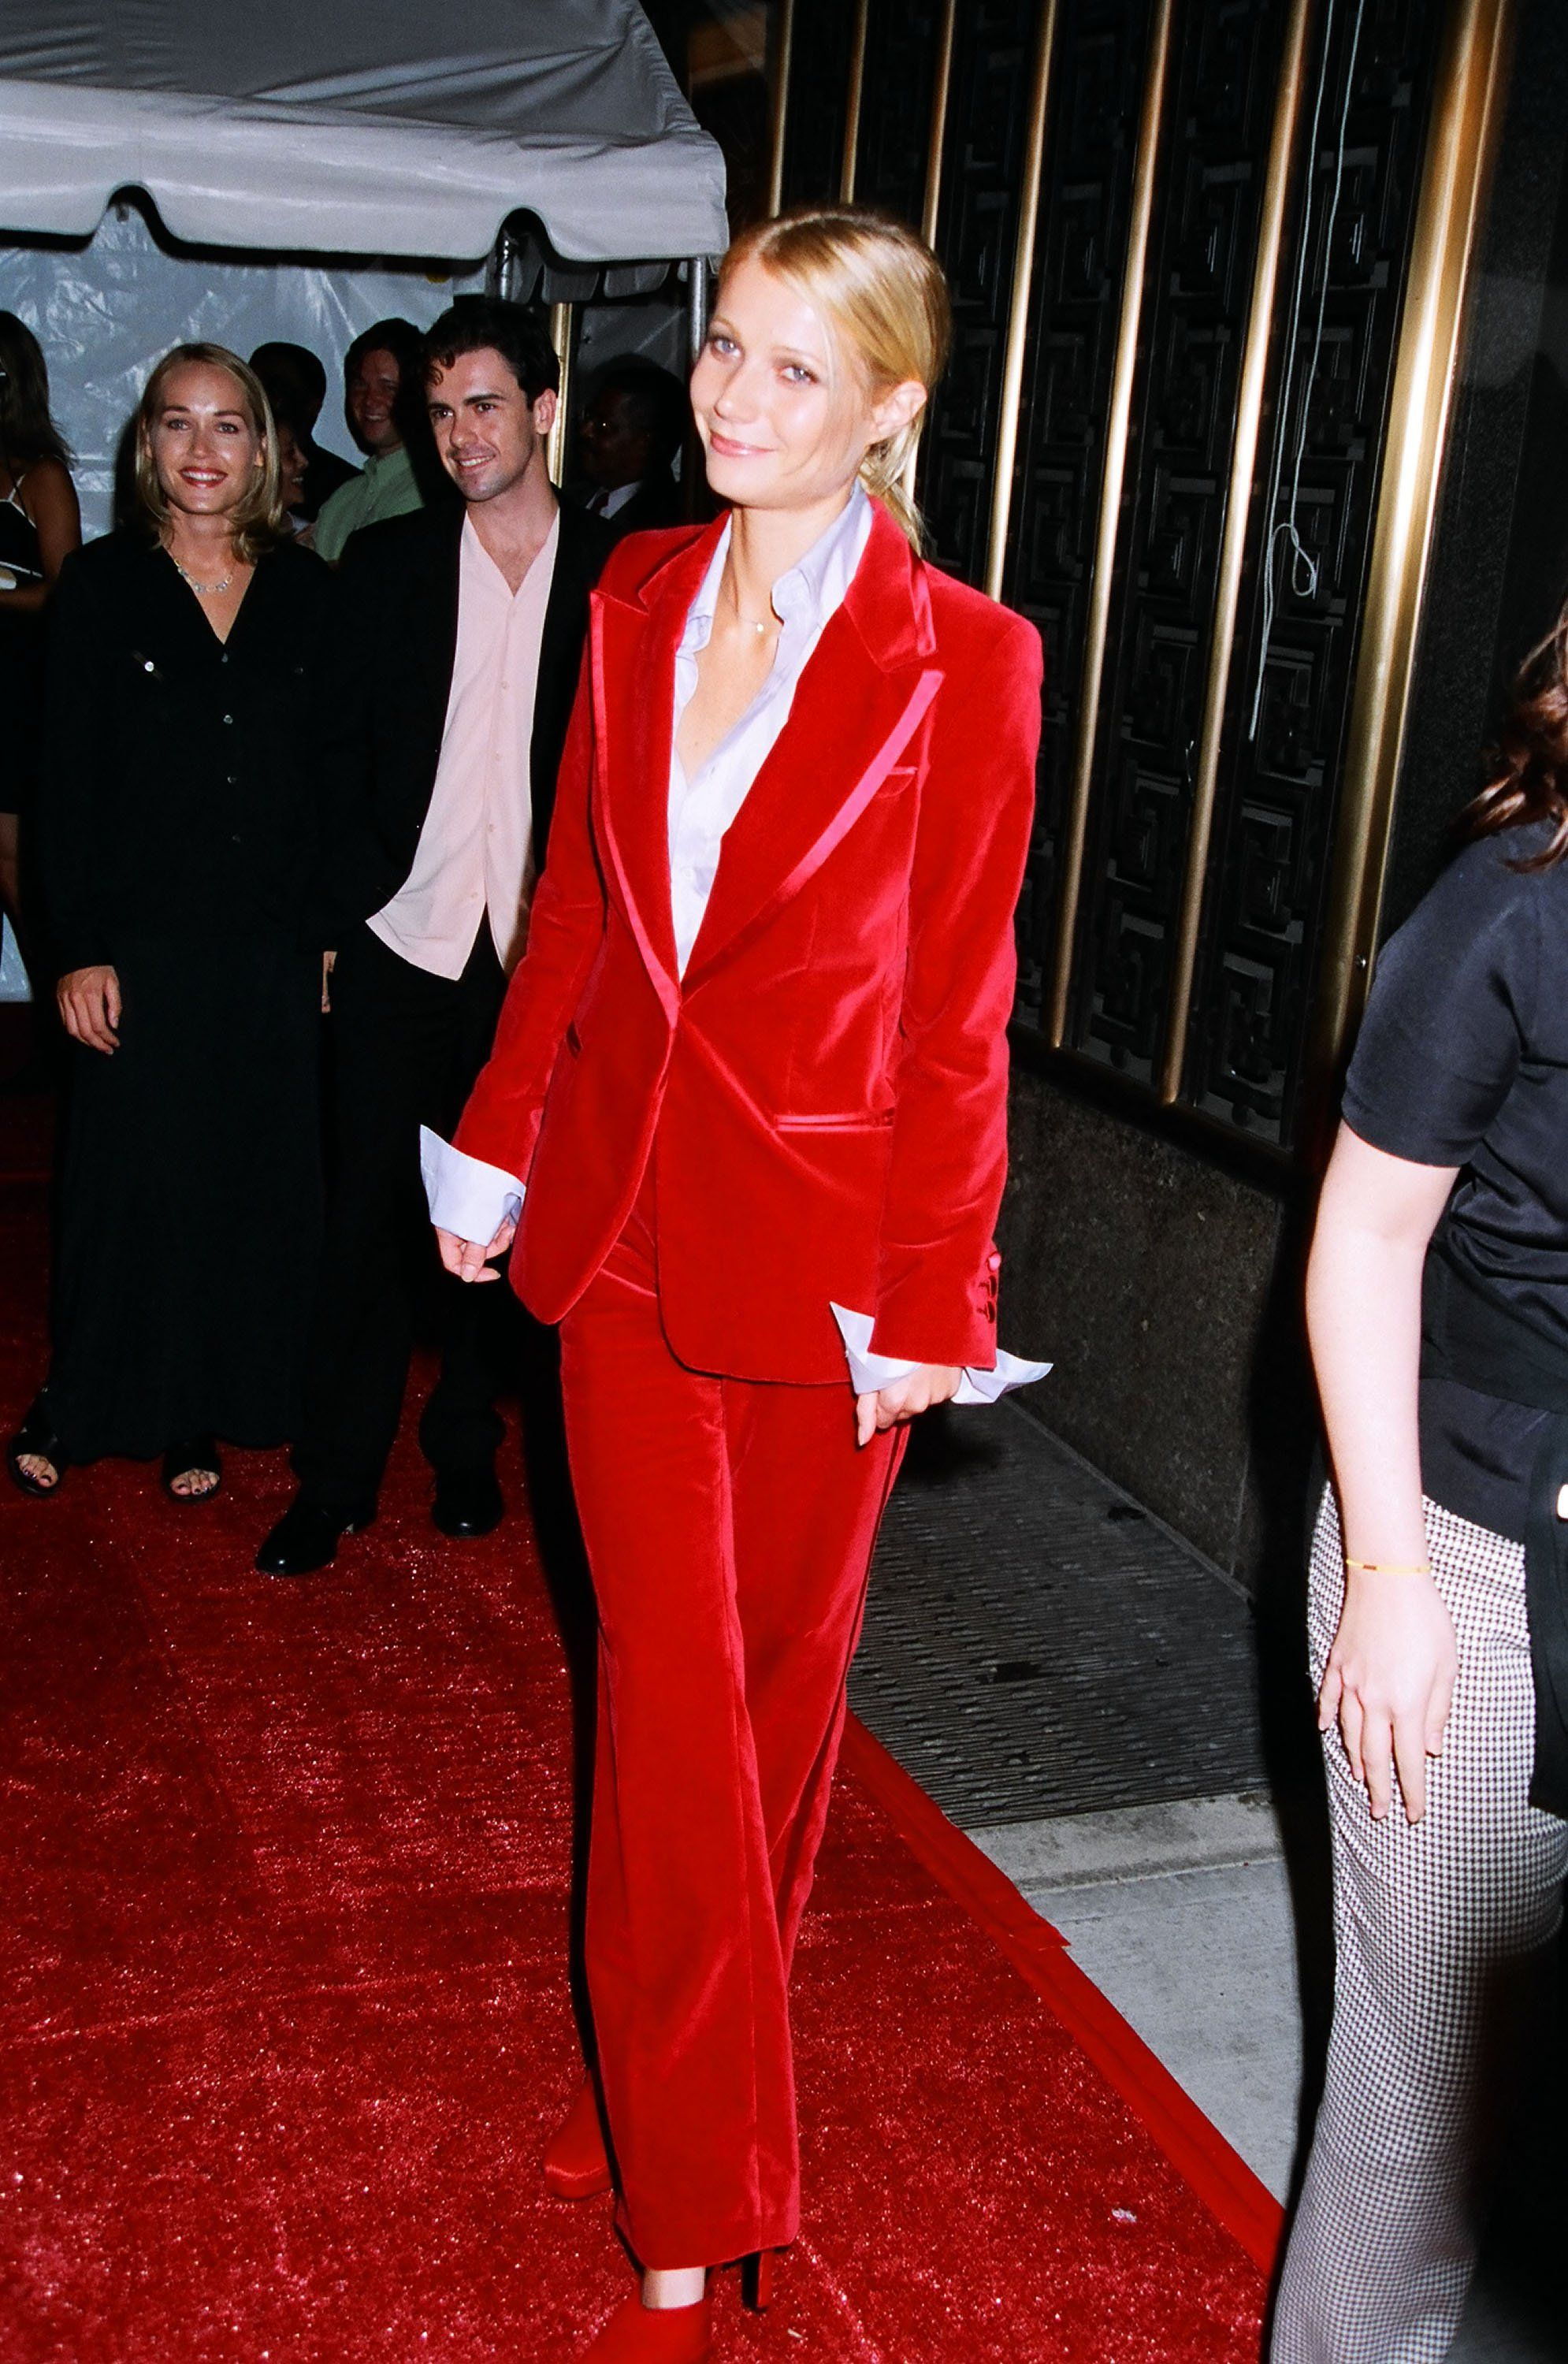 See All the Grammys 2017 Red Carpet Celebrity Fashion ...